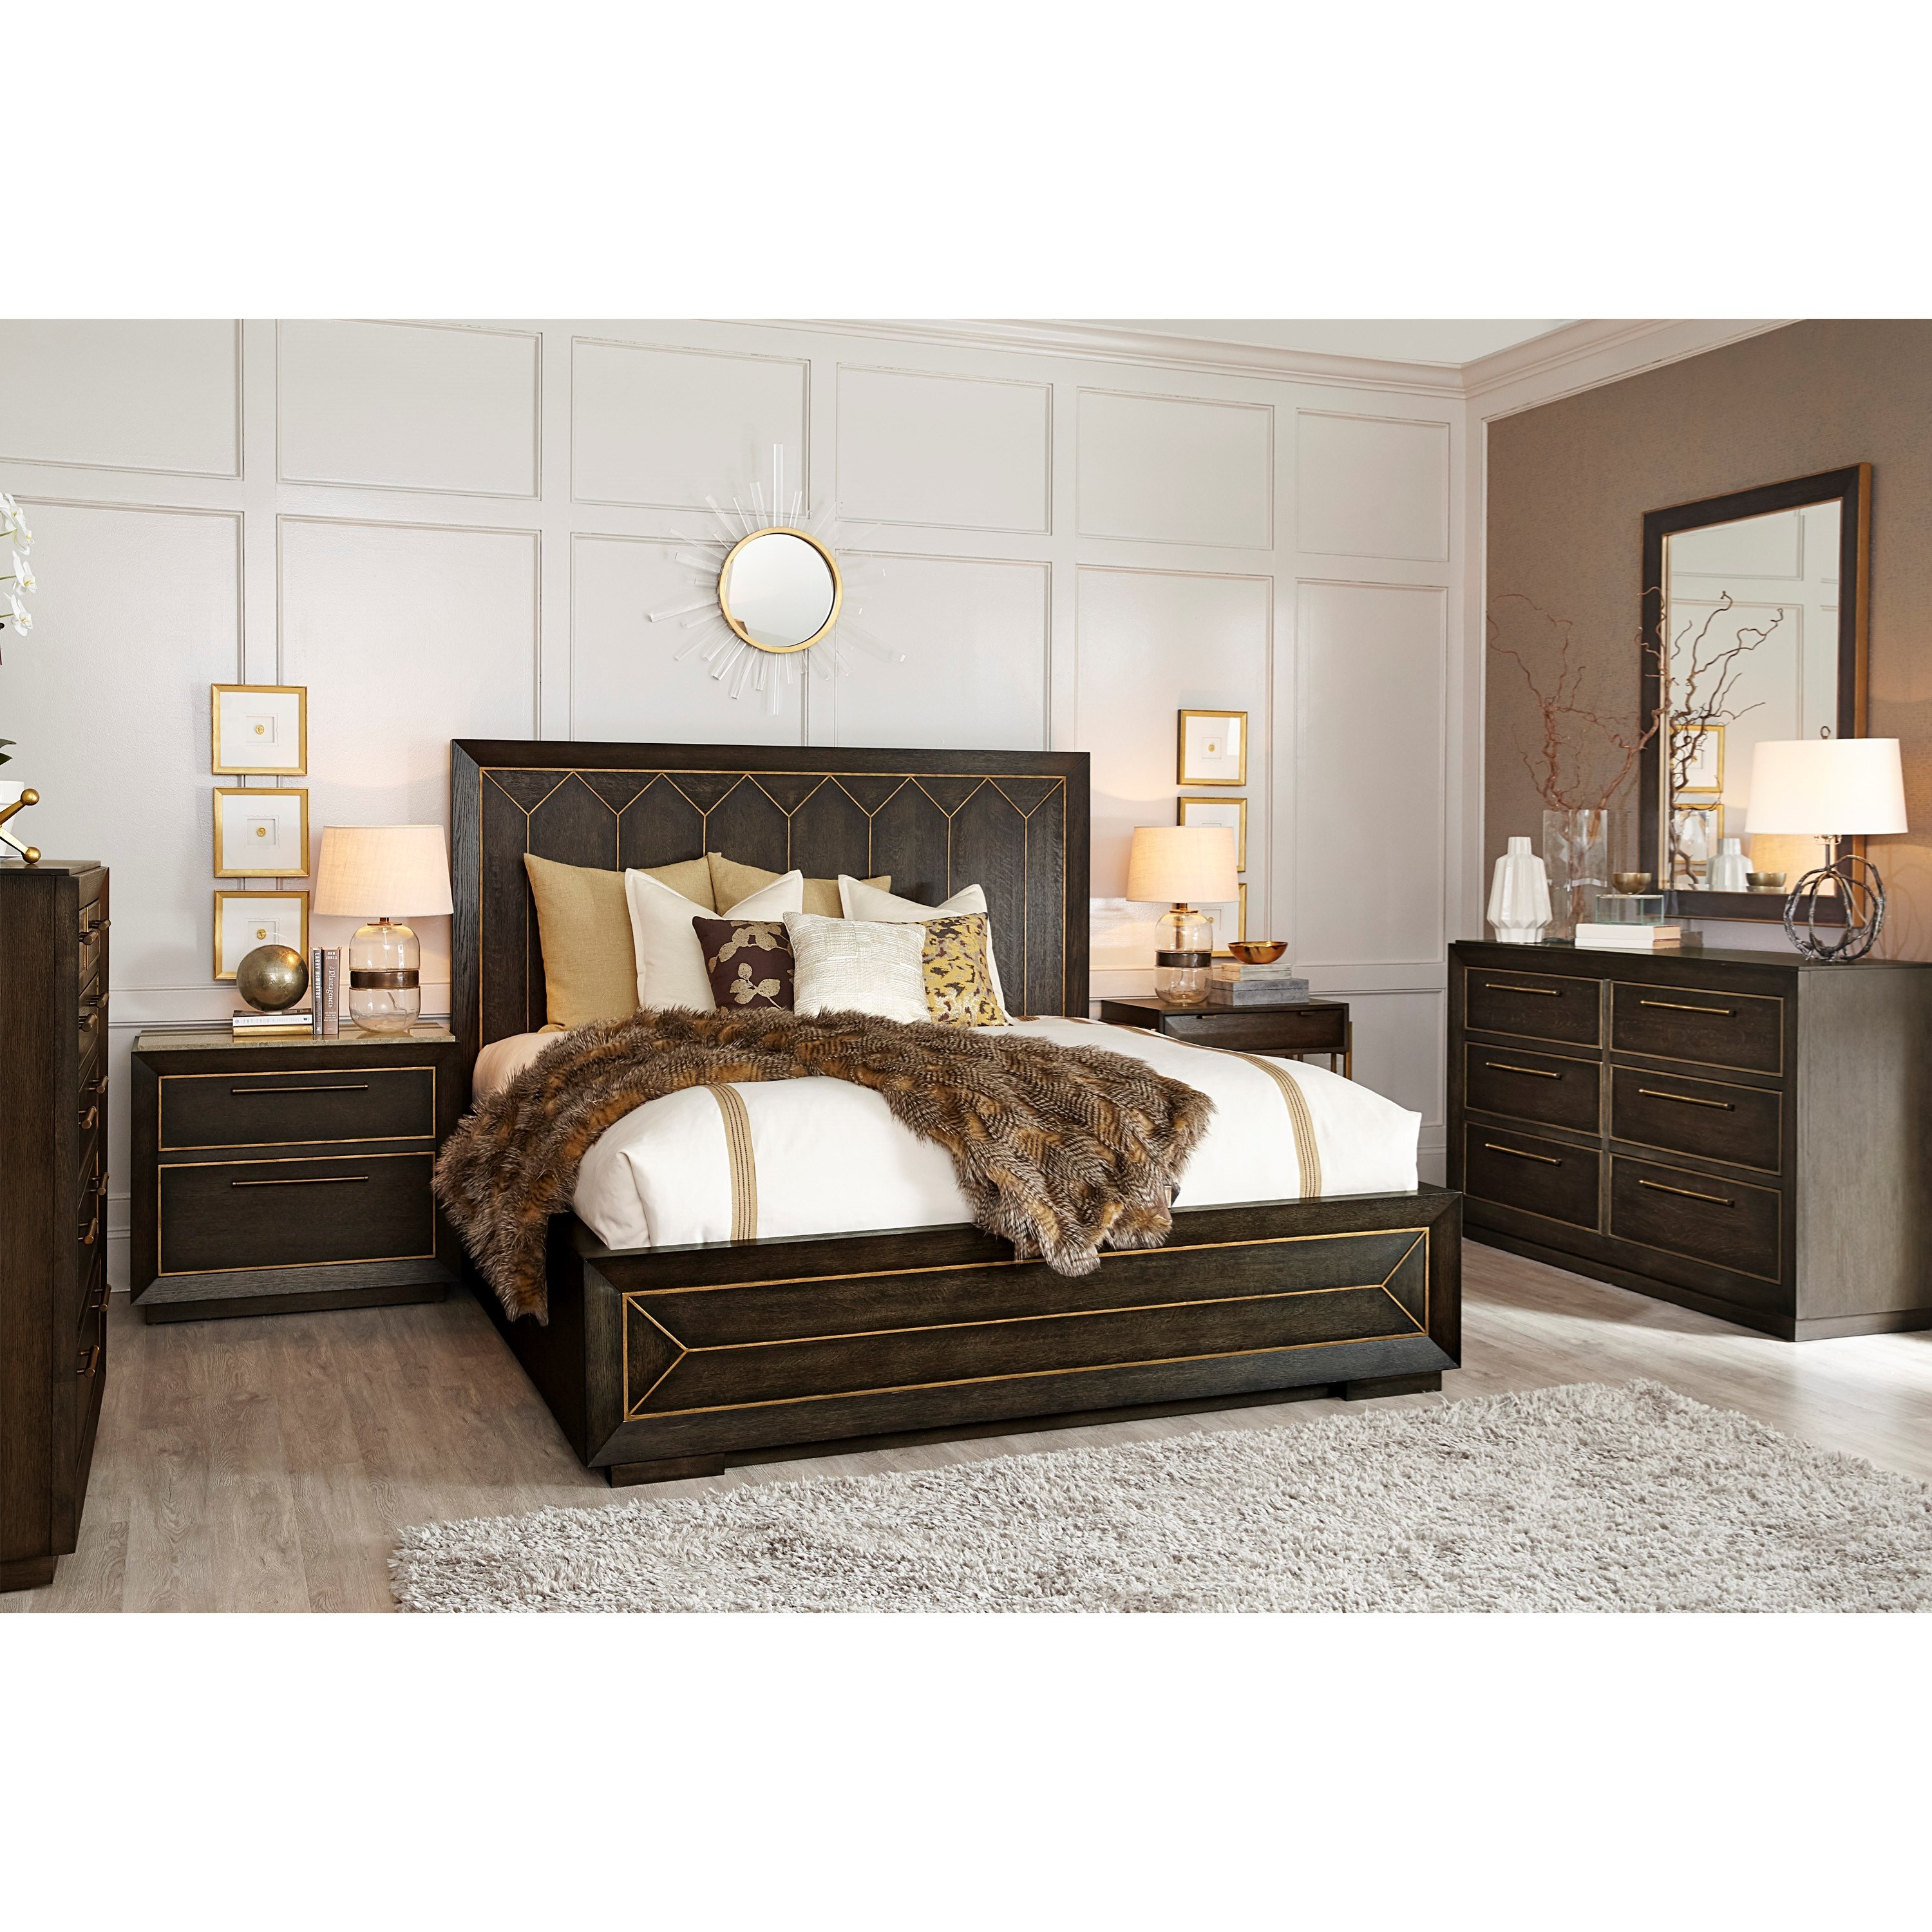 WoodWright Queen Bedroom Group by A.R.T. Furniture Inc at Home Collections Furniture